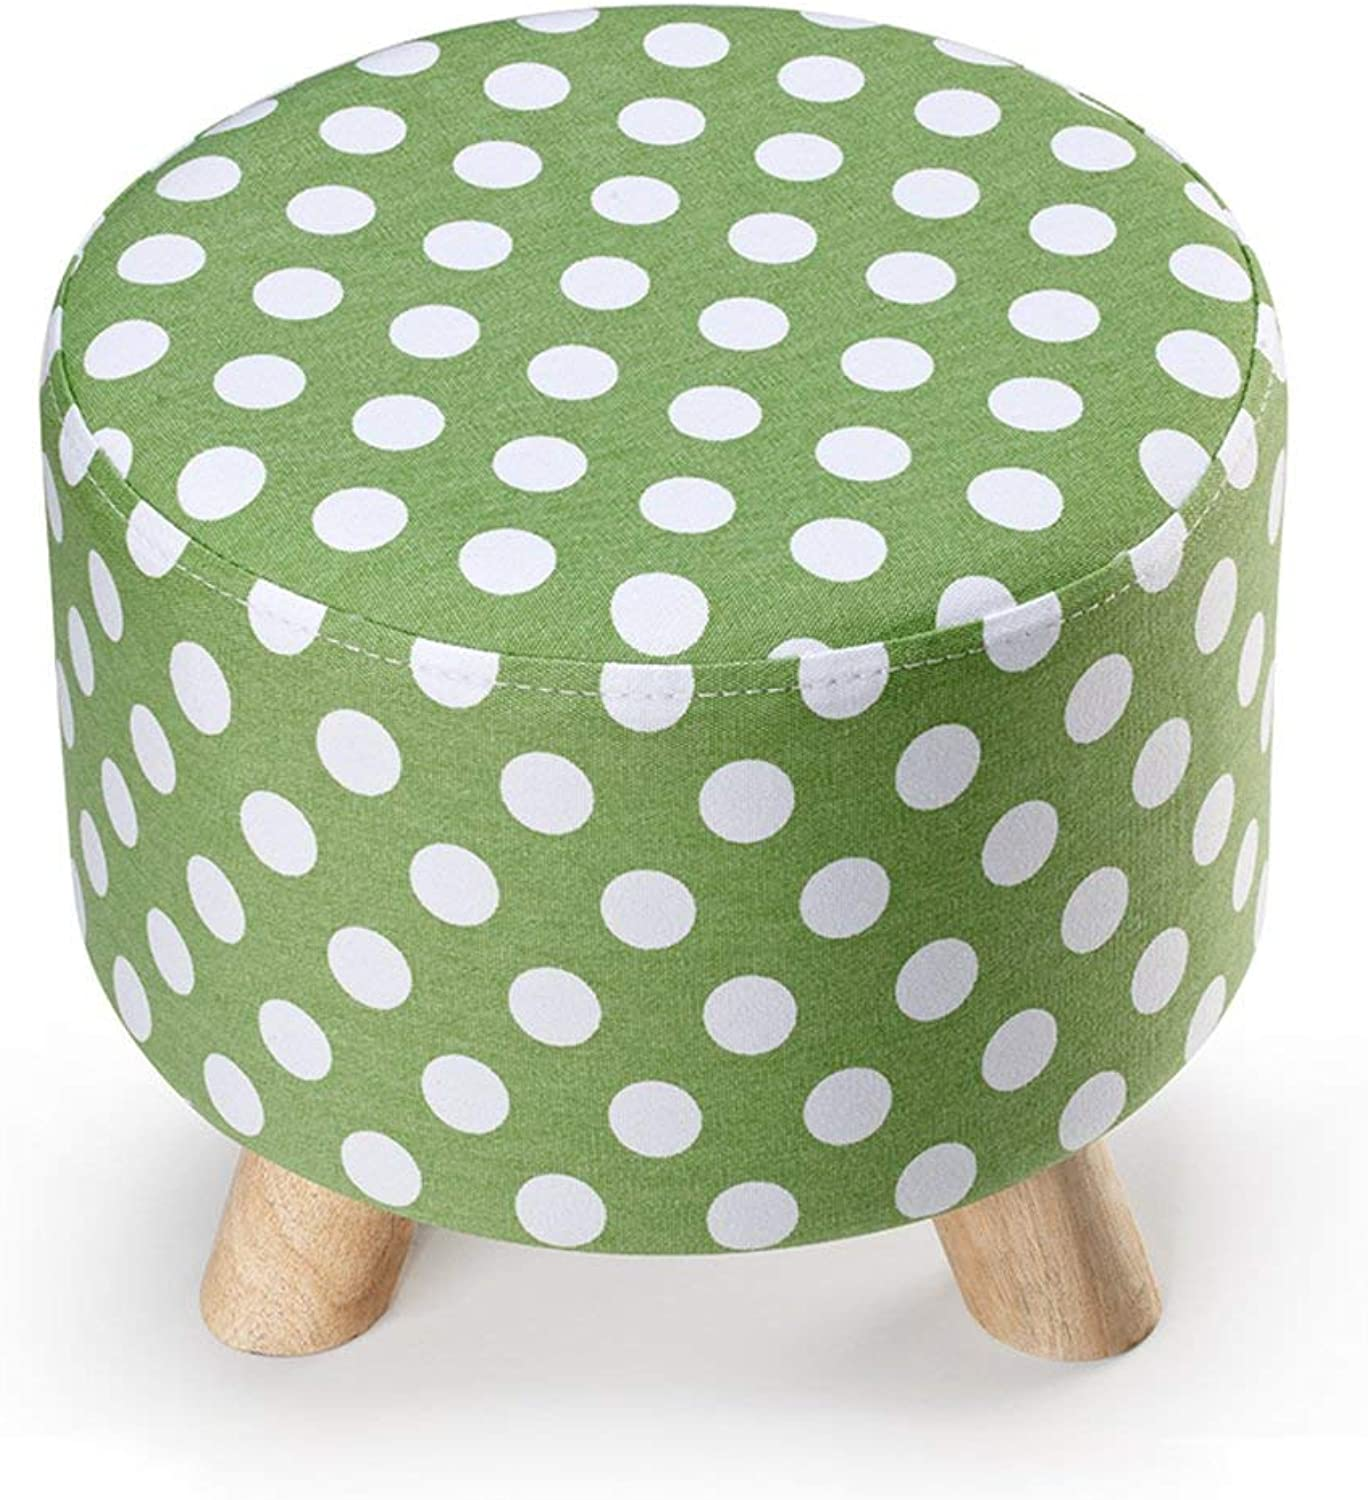 Juexianggou Solid Wood Footstool Three feet Small Stool Detachable wash Change to shoes Stool European Style Sofa Stool Foot Stool for Bedroom (color   P, Size   30x28cm(12x11inch))